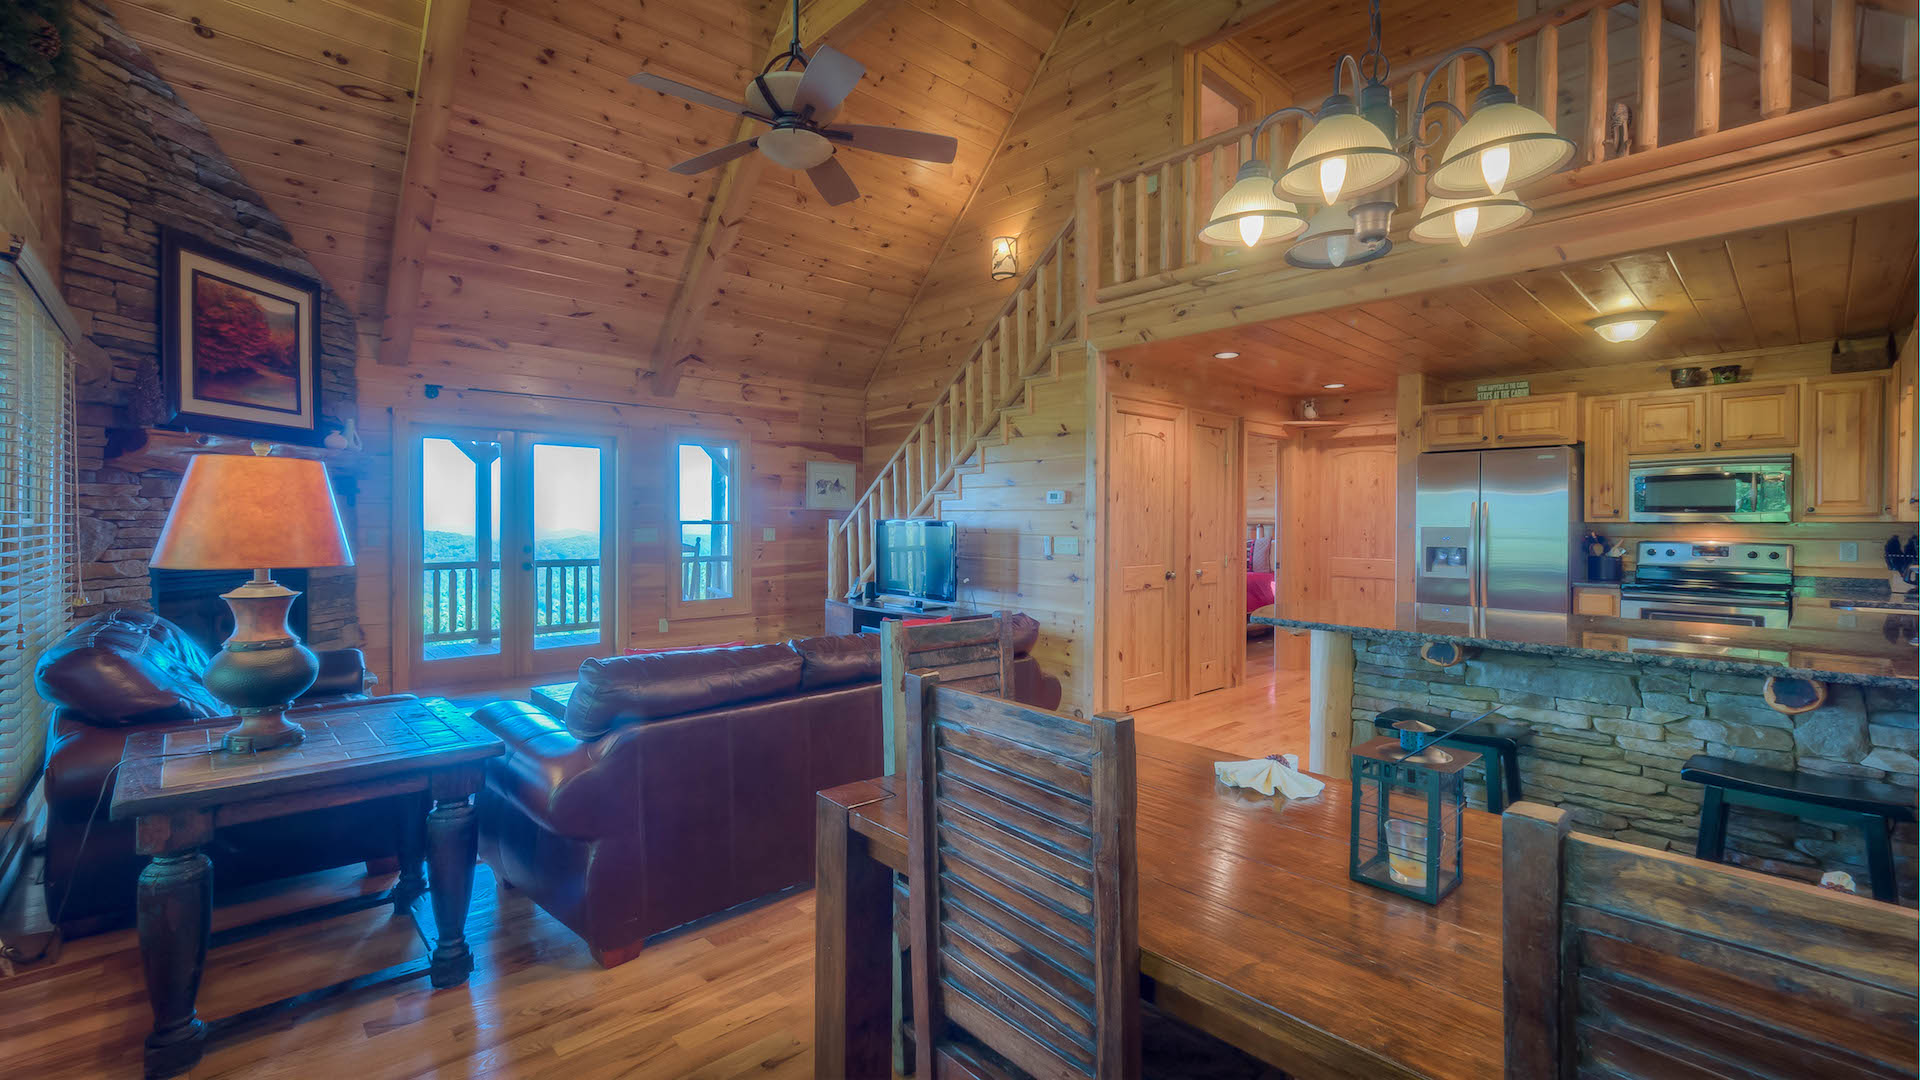 rental ridge ga dreams georgia pinterest blue rentals ar pin cabins chasing house cabin in